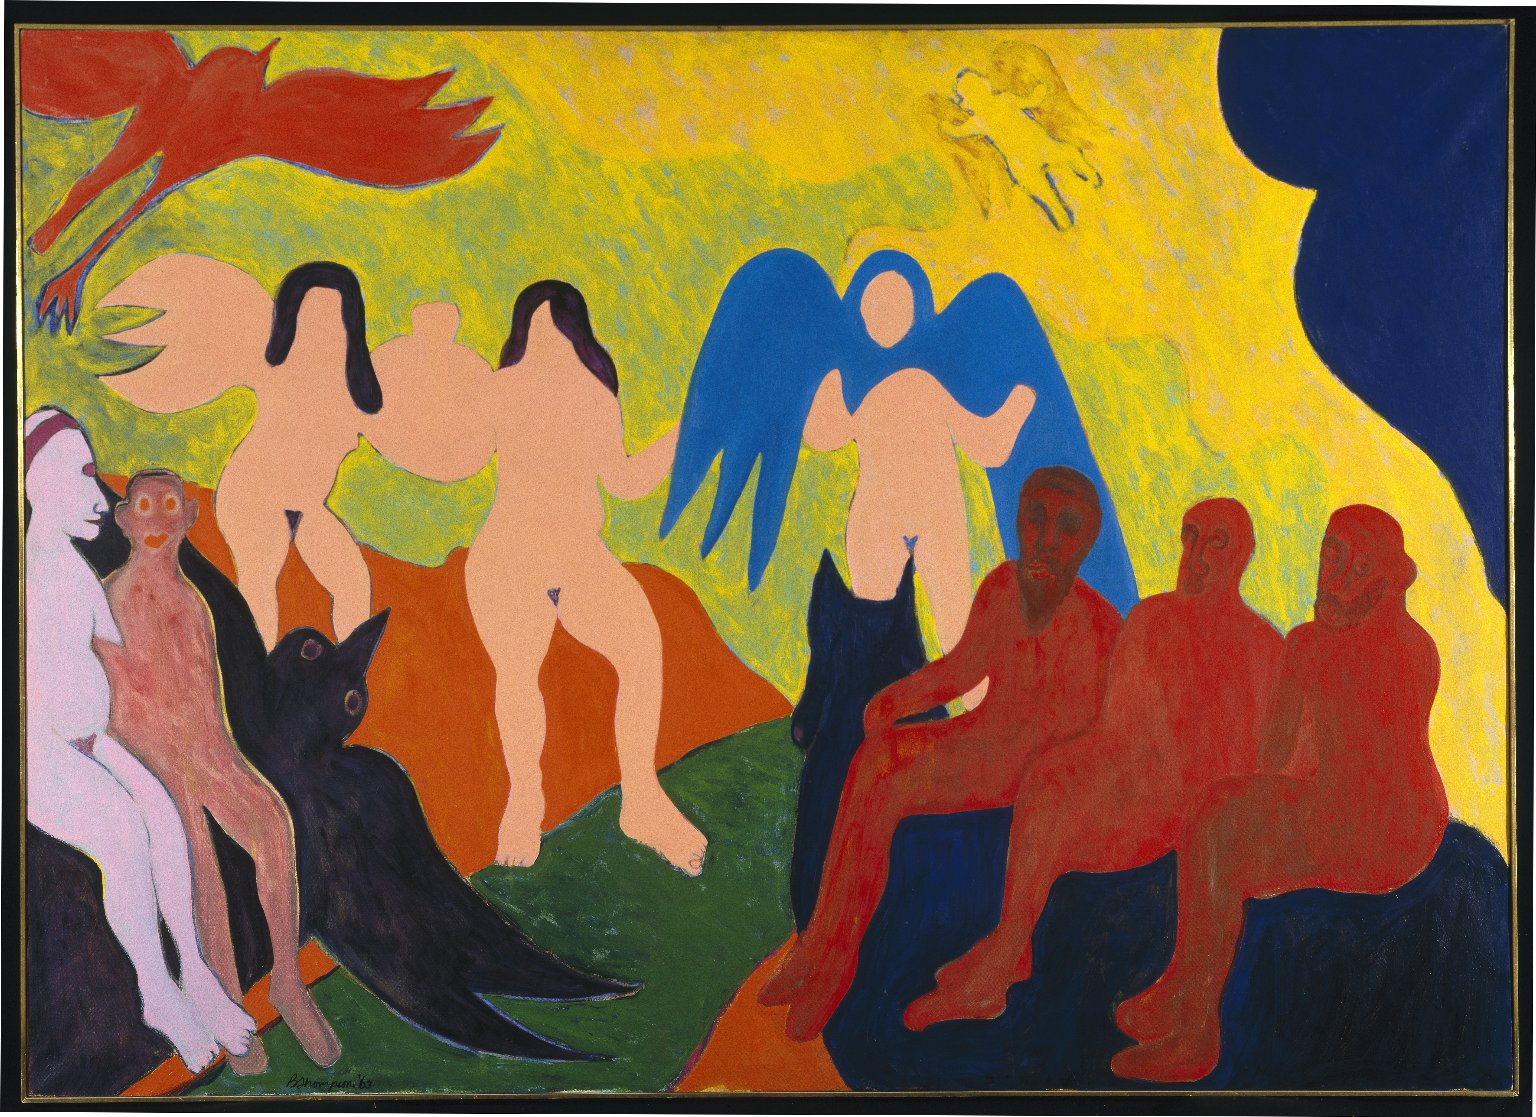 """""""The Judgement """" by Bob Thompson, 1963. Oil on canvas, 60x84in. Brooklyn Museum, A. Augustus Healy Fund, 81.214. © Estate of Bob Thompson (Photo: Brooklyn Museum, 81.214_SL1.jpg)"""